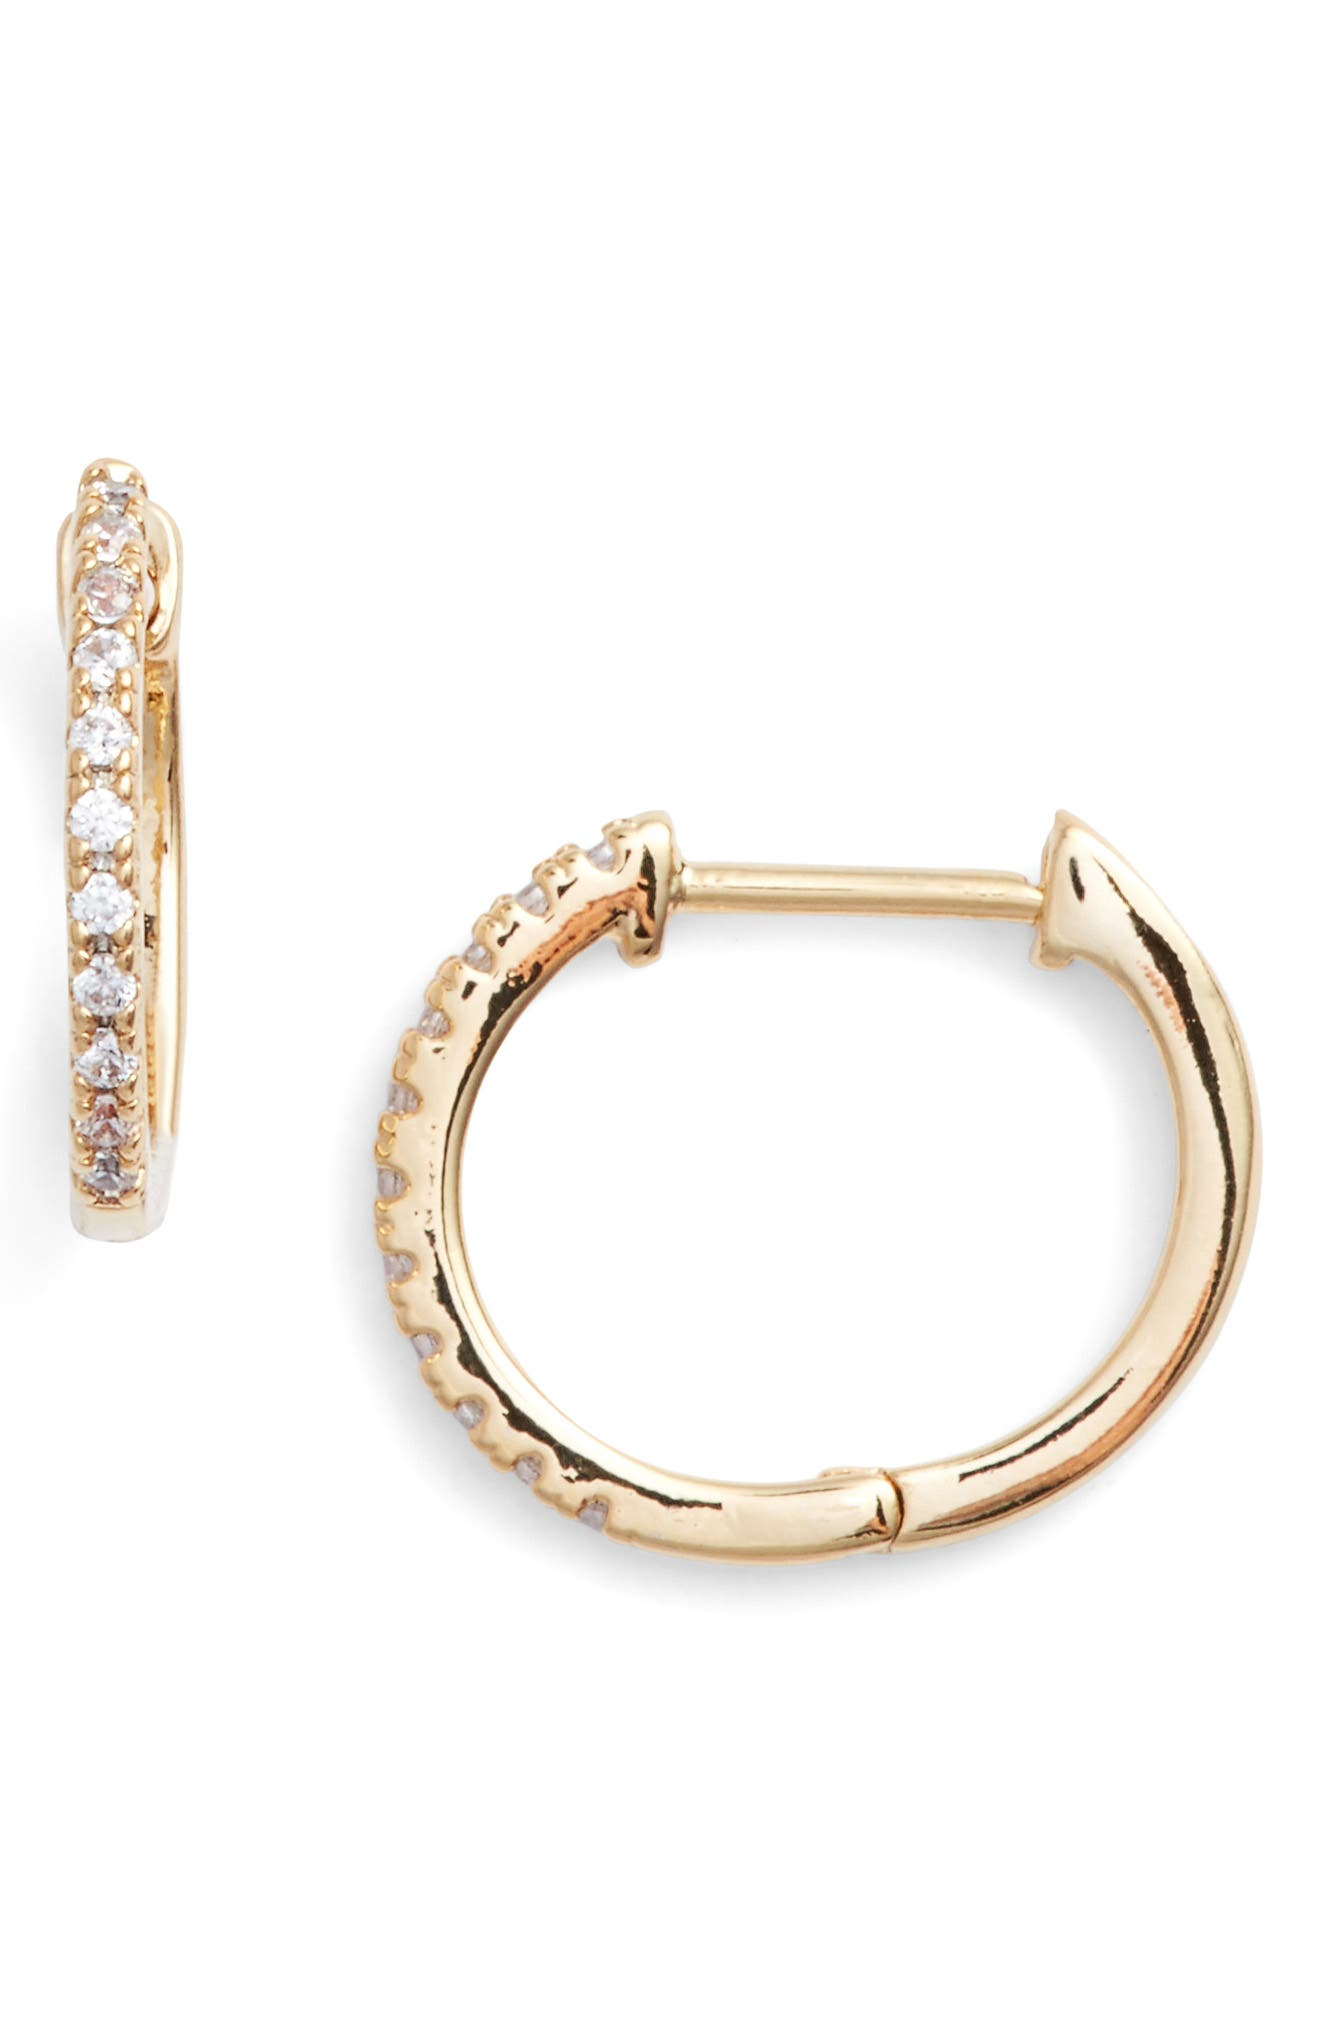 Kennedy Petite Stone Hoops,                         Main,                         color, Gold/ Cubic Zirconia